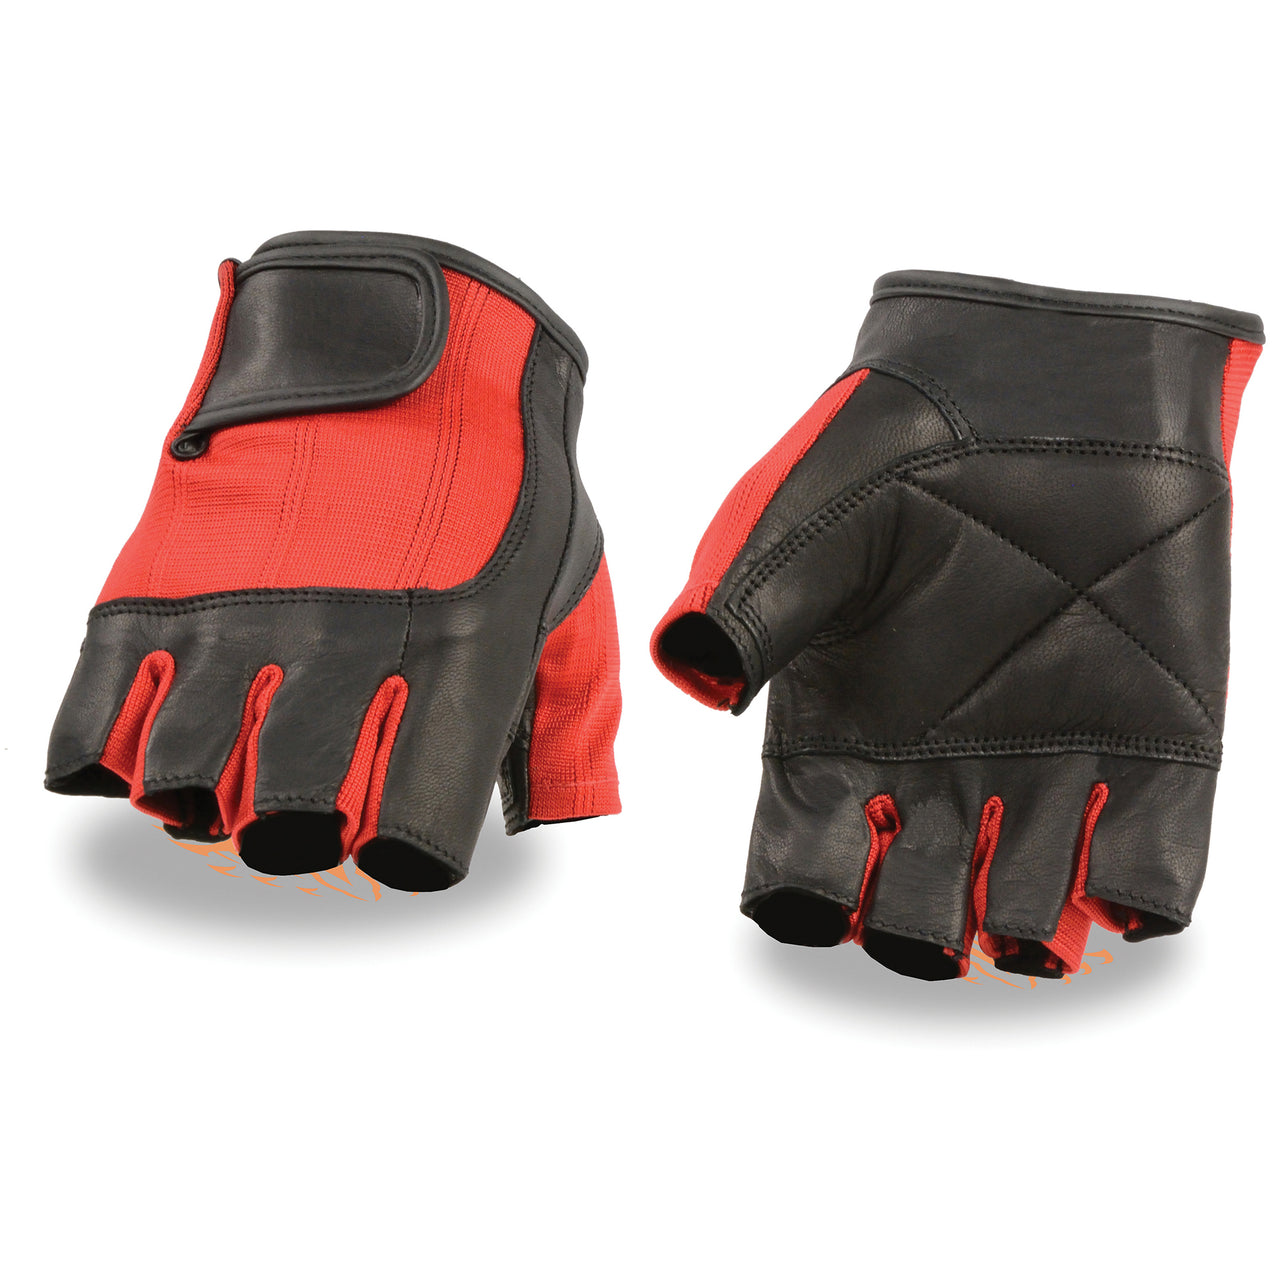 Men's leather Black/Red Spandex Fingerless Glove - HighwayLeather